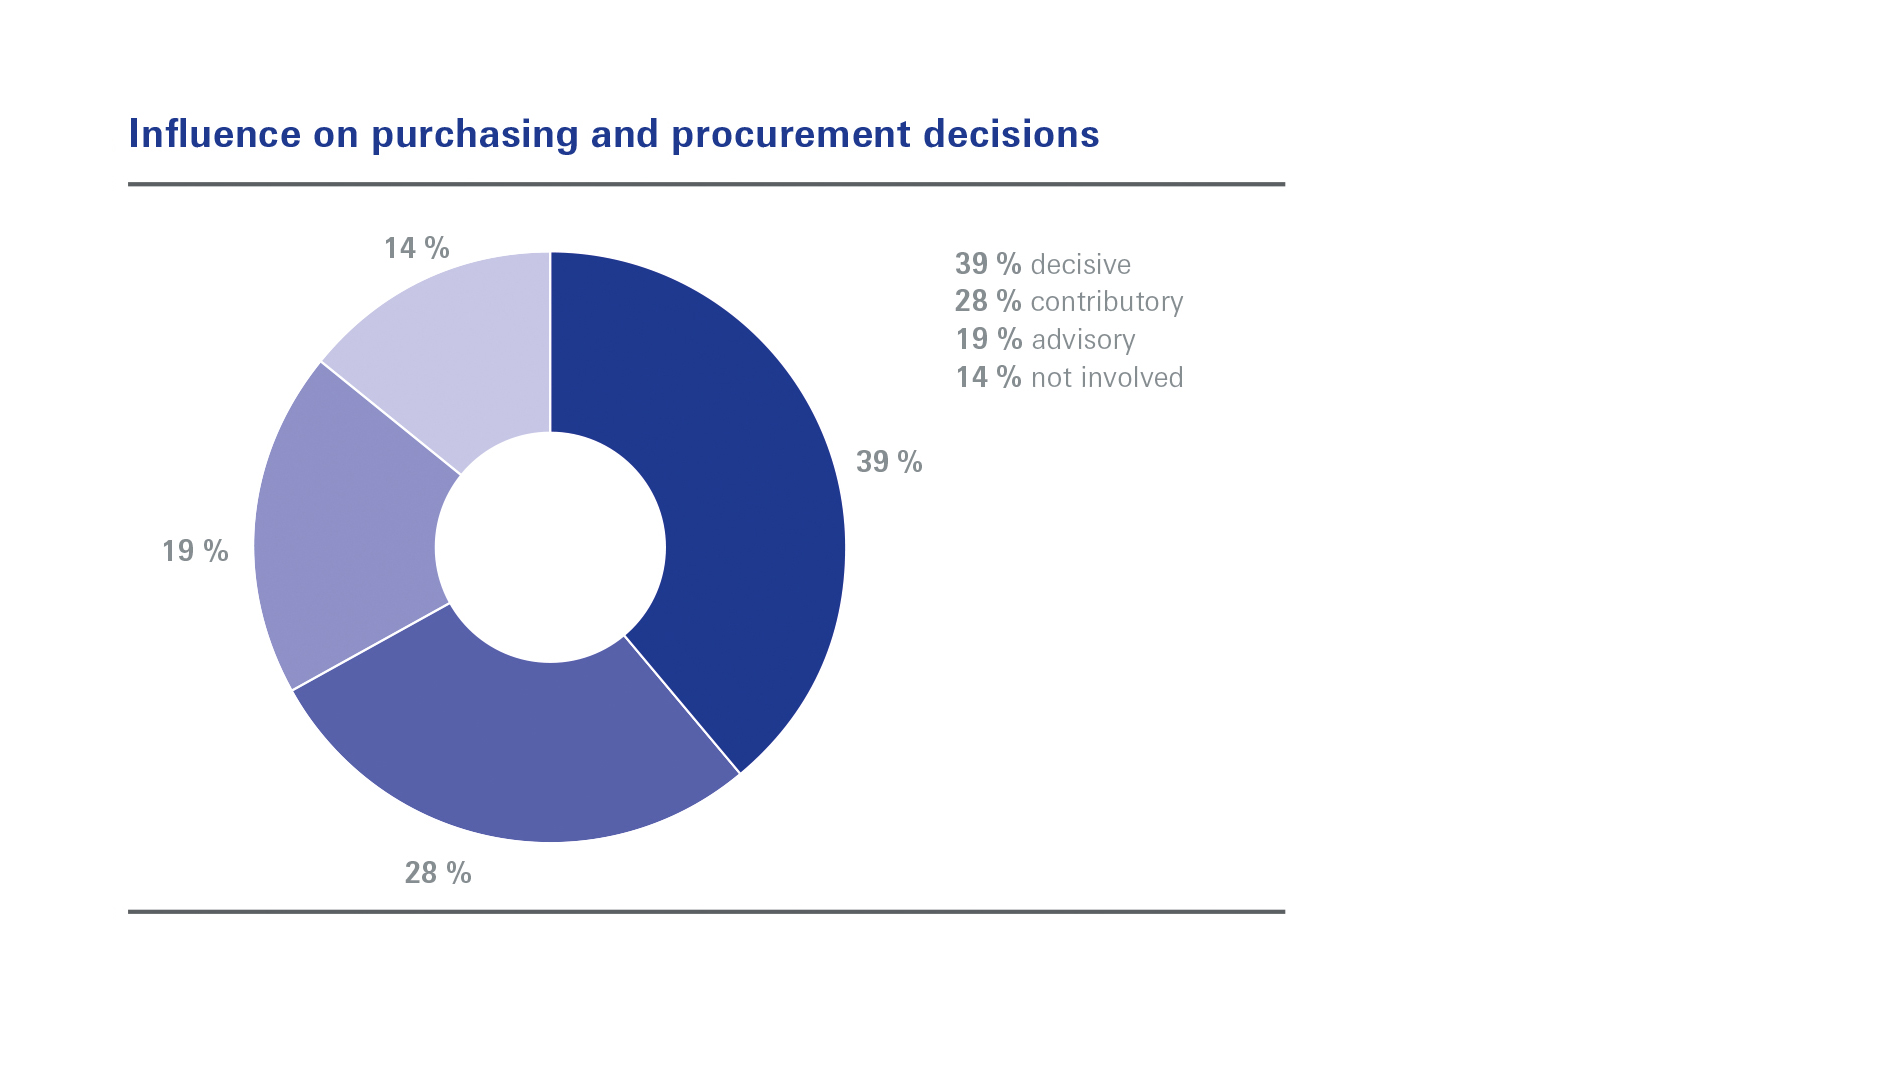 Influence on purchasing and procurement decisions